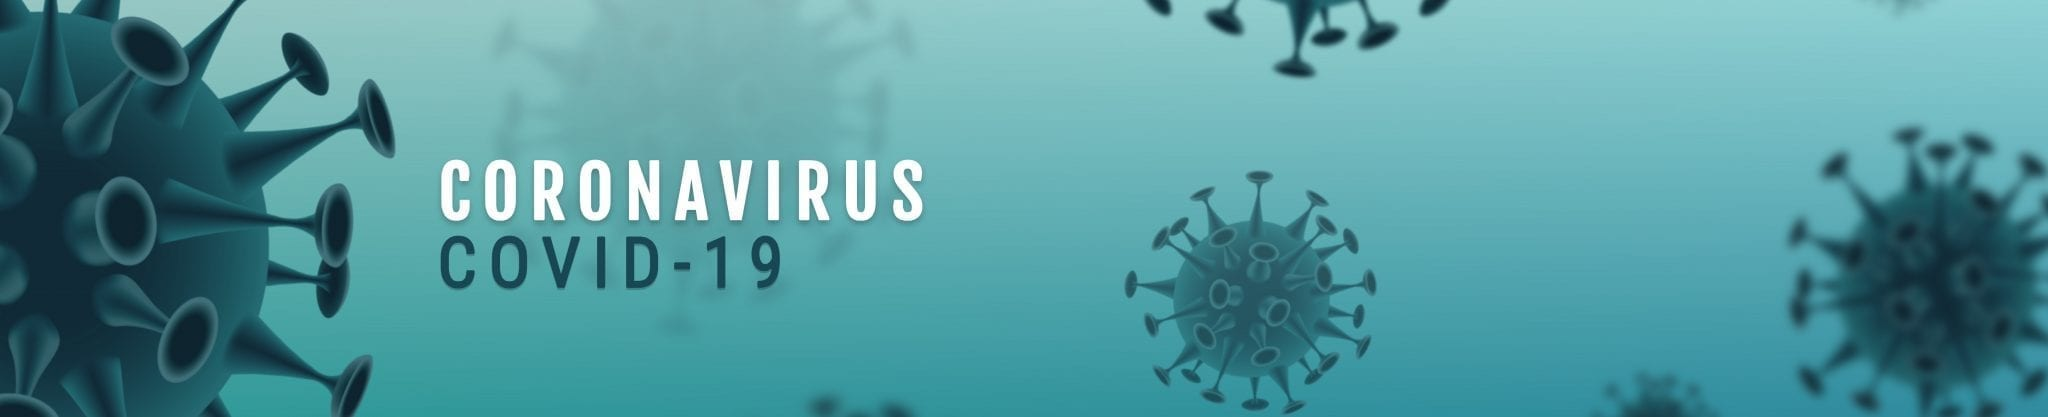 Corona Virus banner illustration